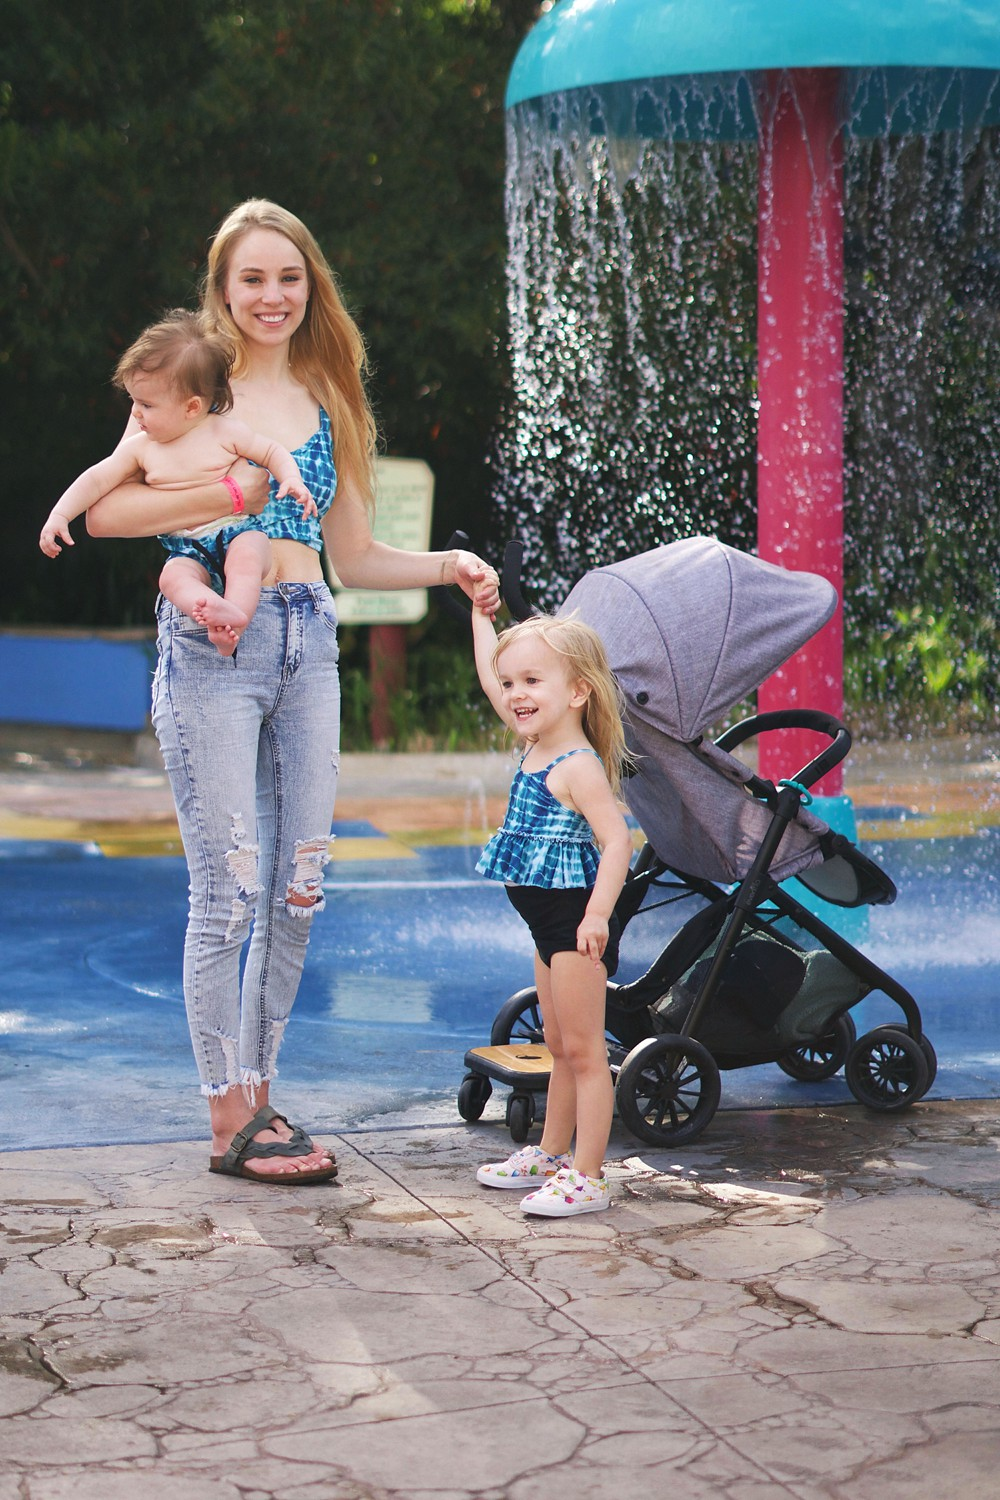 Splash Pad at Busch Gardens with Two Kids & the Evenflo Sibby Stroller by Rachael Burgess